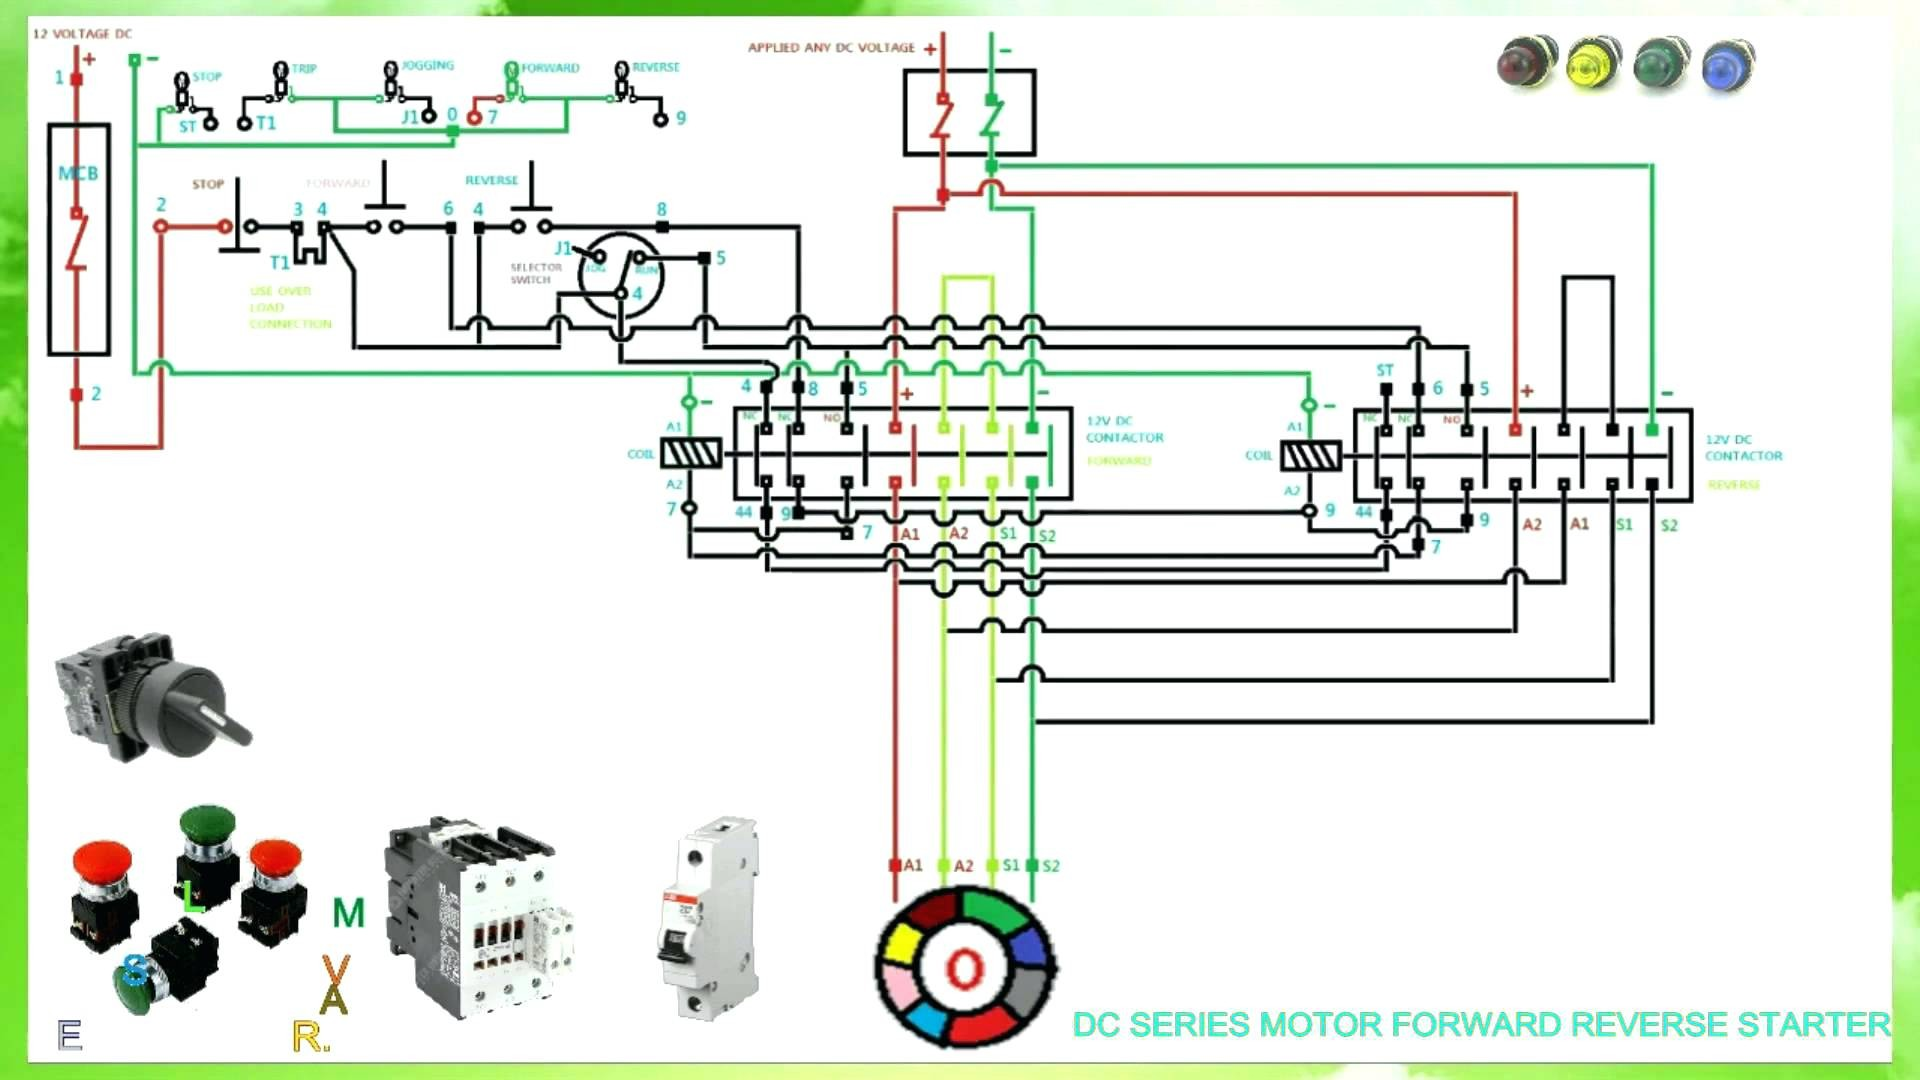 3 Phase Starter Wiring Diagram Motor Pdf Dol Control For Forward Reverse